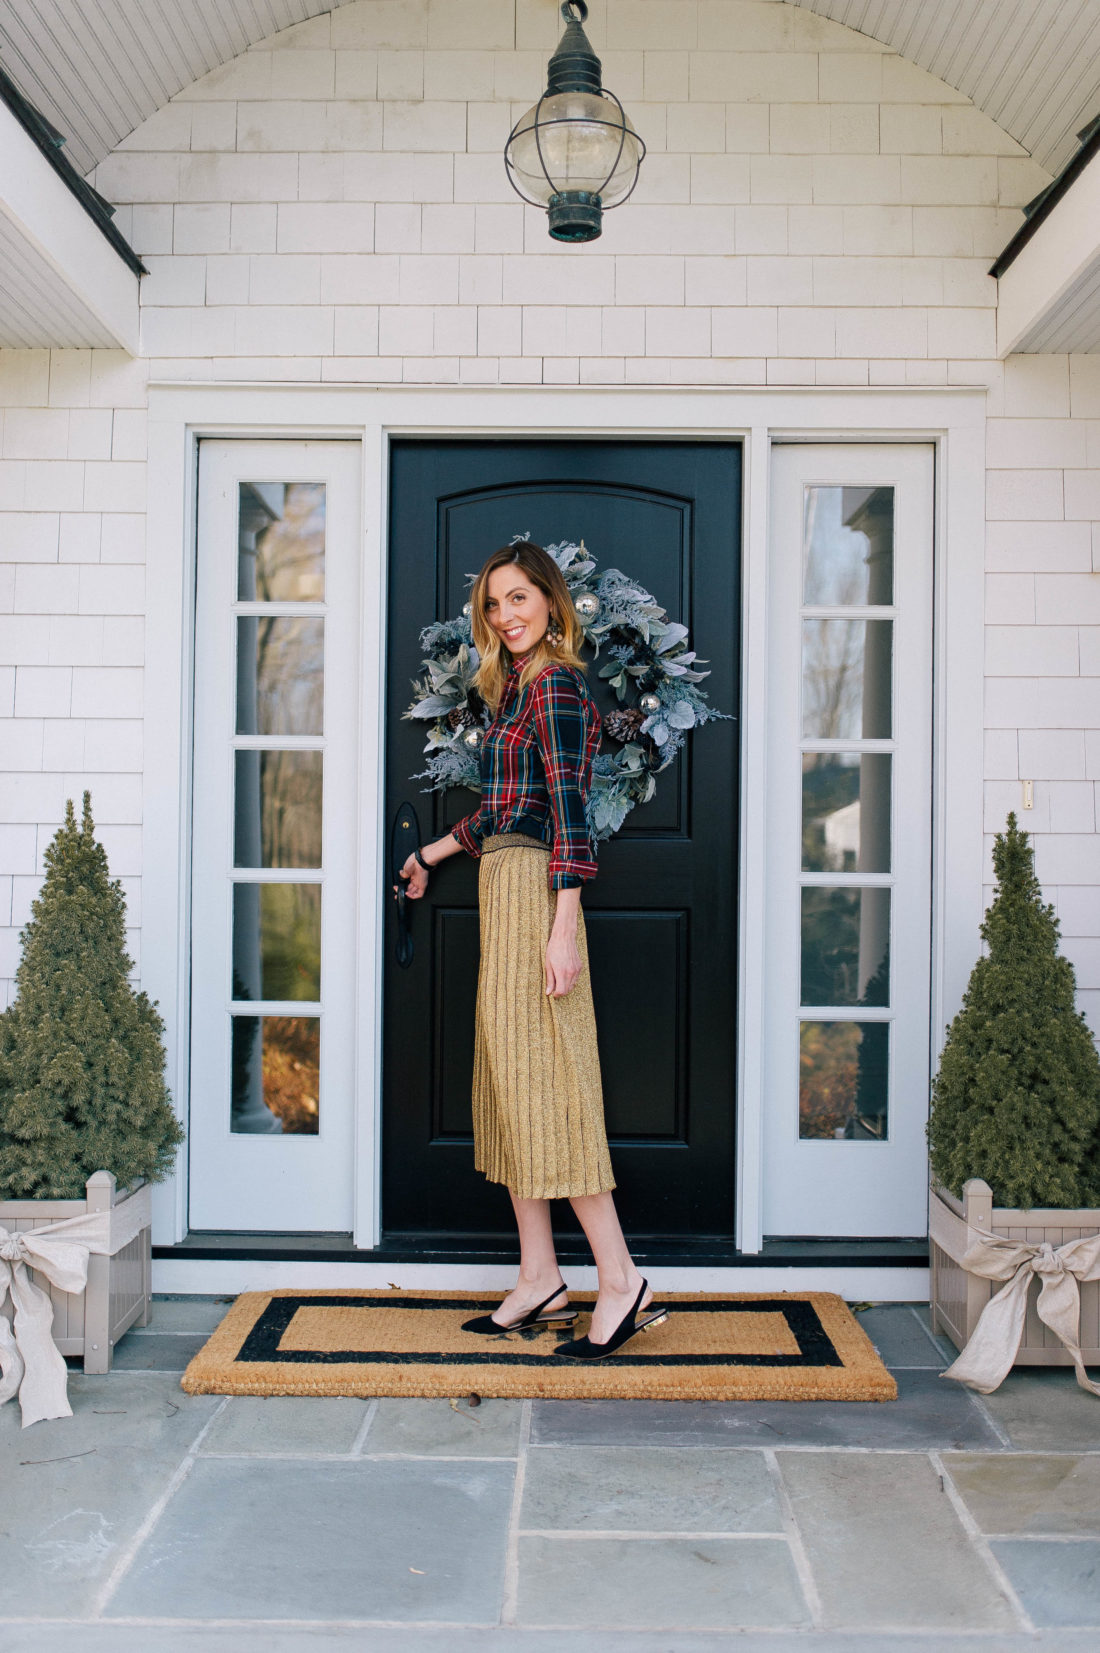 Eva Amurri Martino stands at the doorway of her Connecticut home which is decorated for the holidays